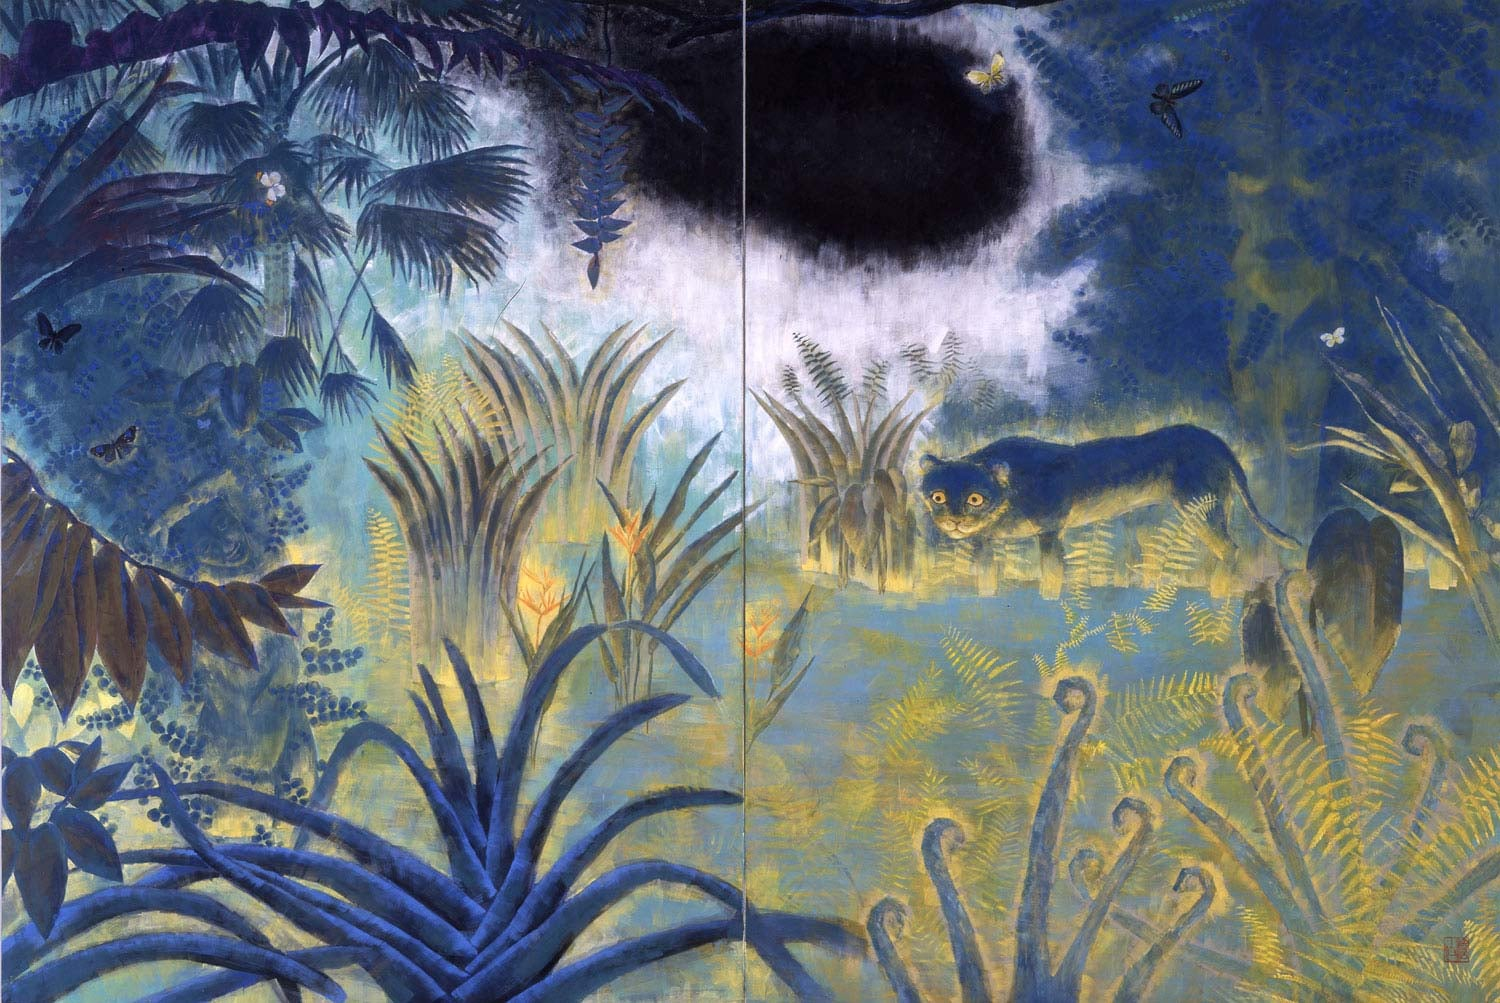 Spring in Forest    1992   Japanese mineral pigment on washi, panel   141 x 98 inches